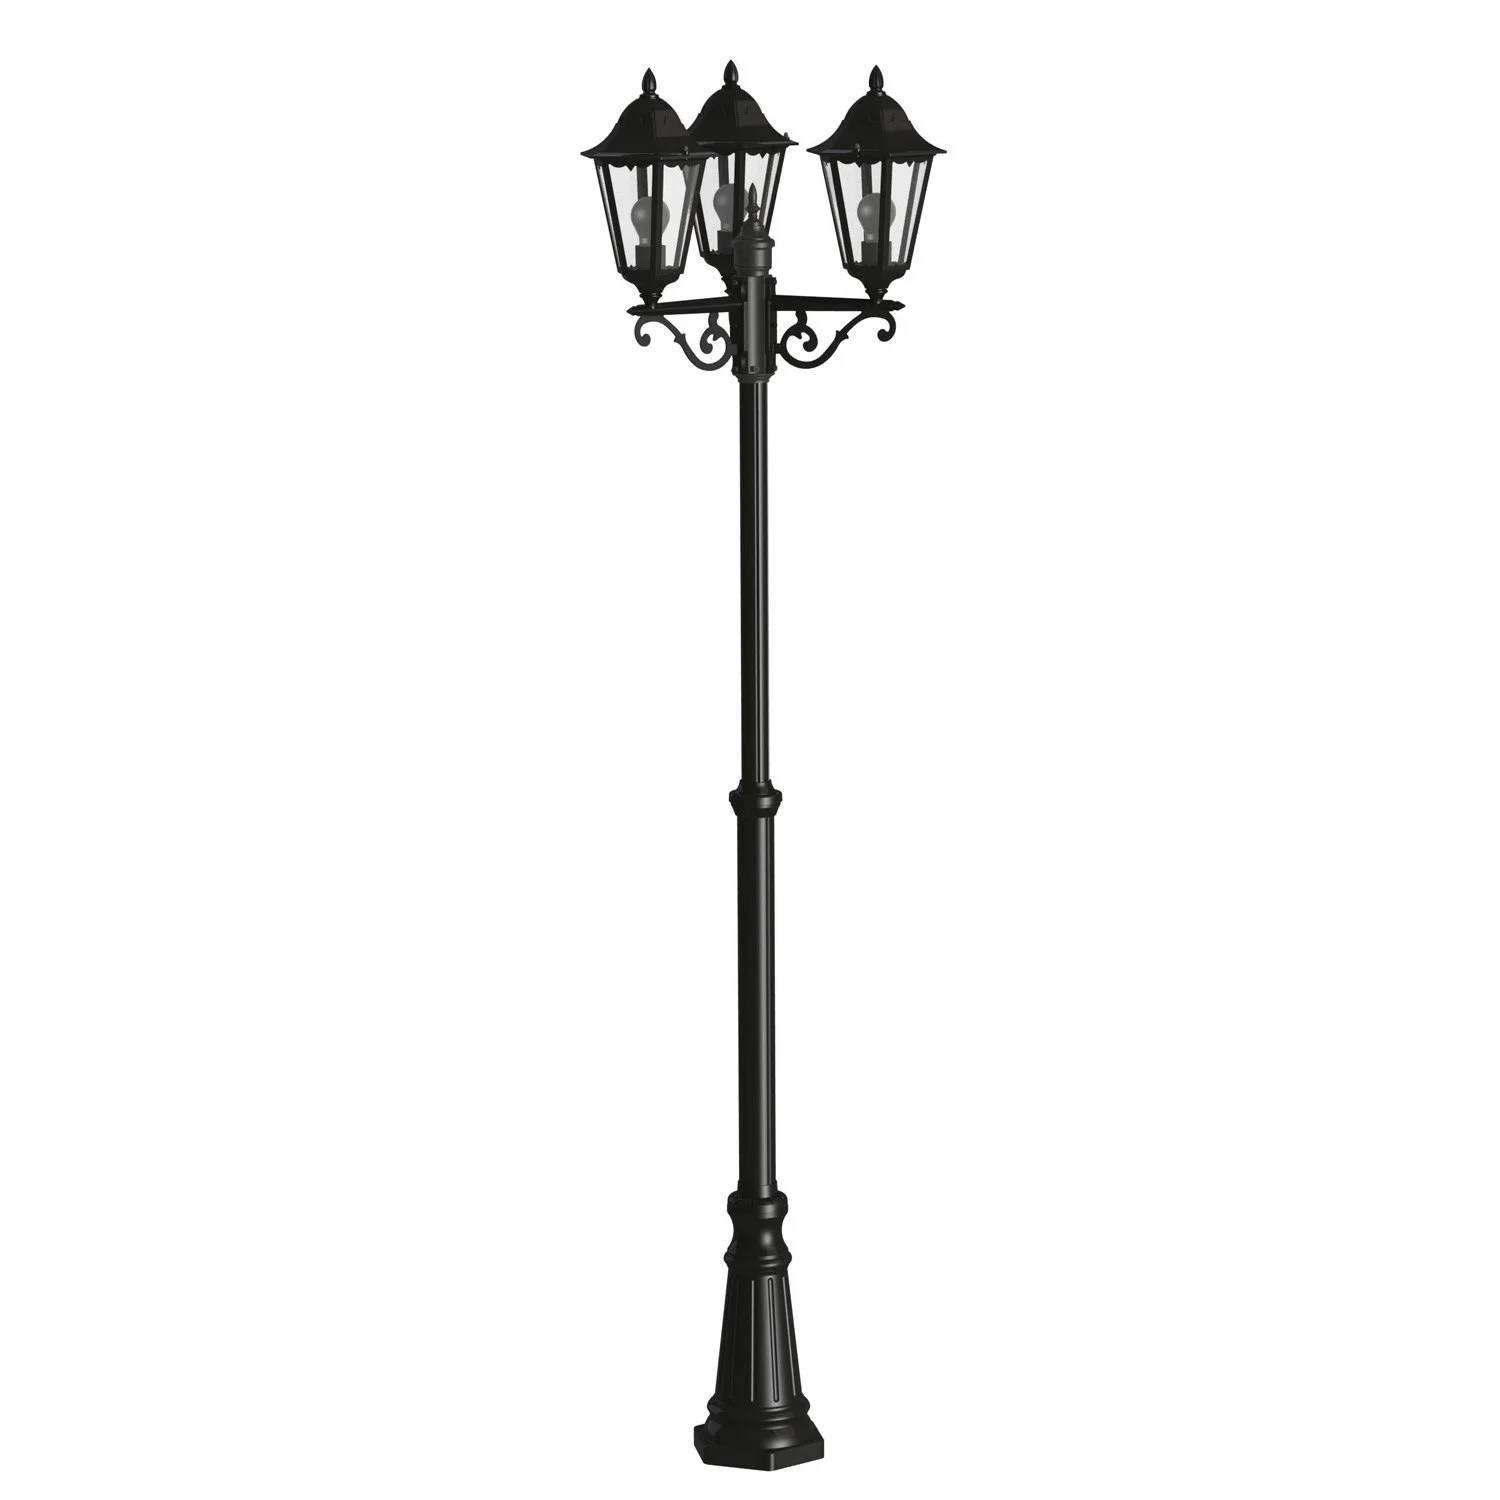 Lampadaire Solaire Leroy Merlin Gamboahinestrosa